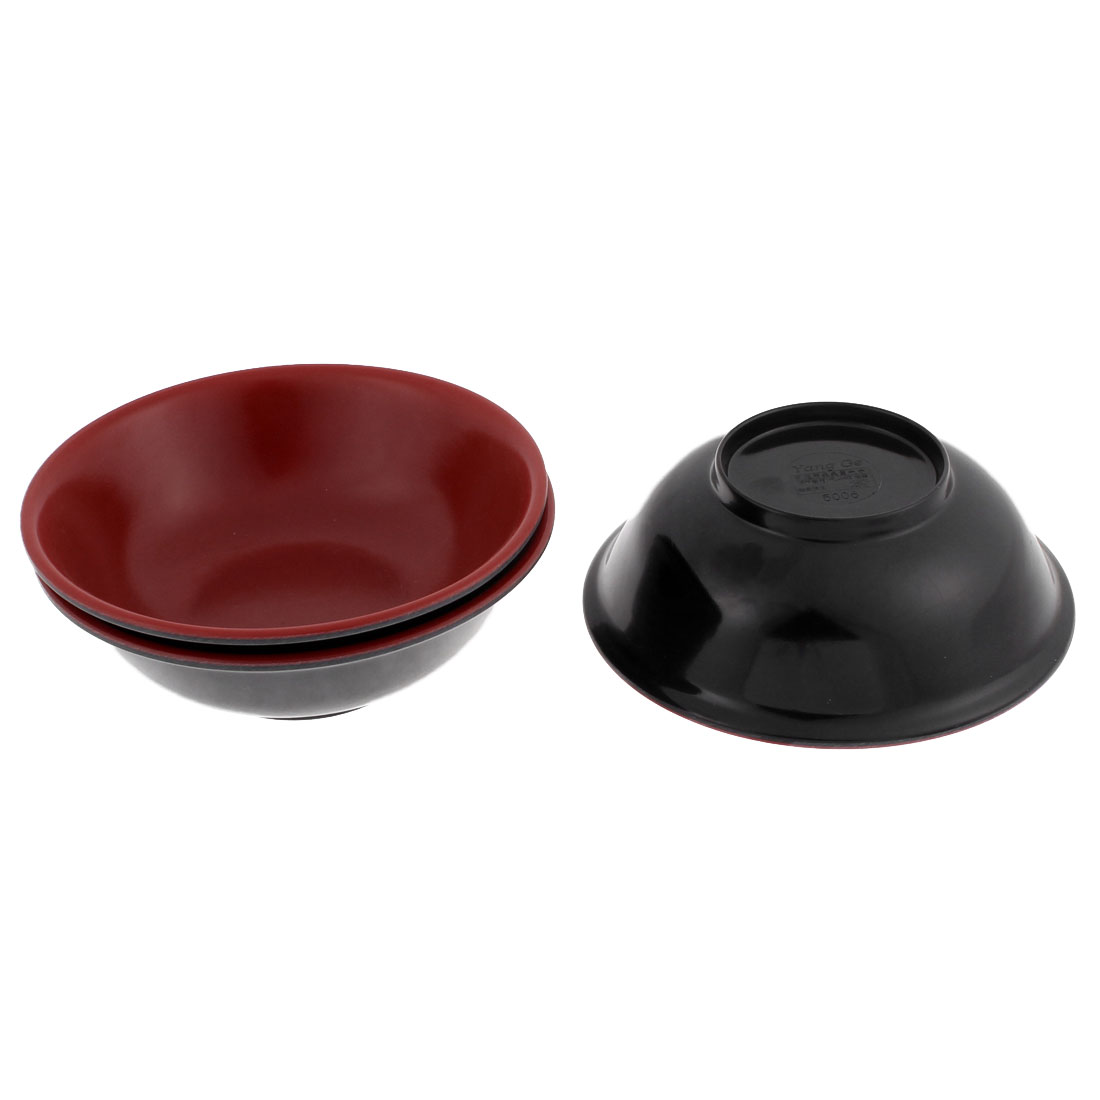 "Home Restaurant Plastic Lunch Dinner Fruit Rice Bowl Container Black Red 6"" Dia 3pcs"